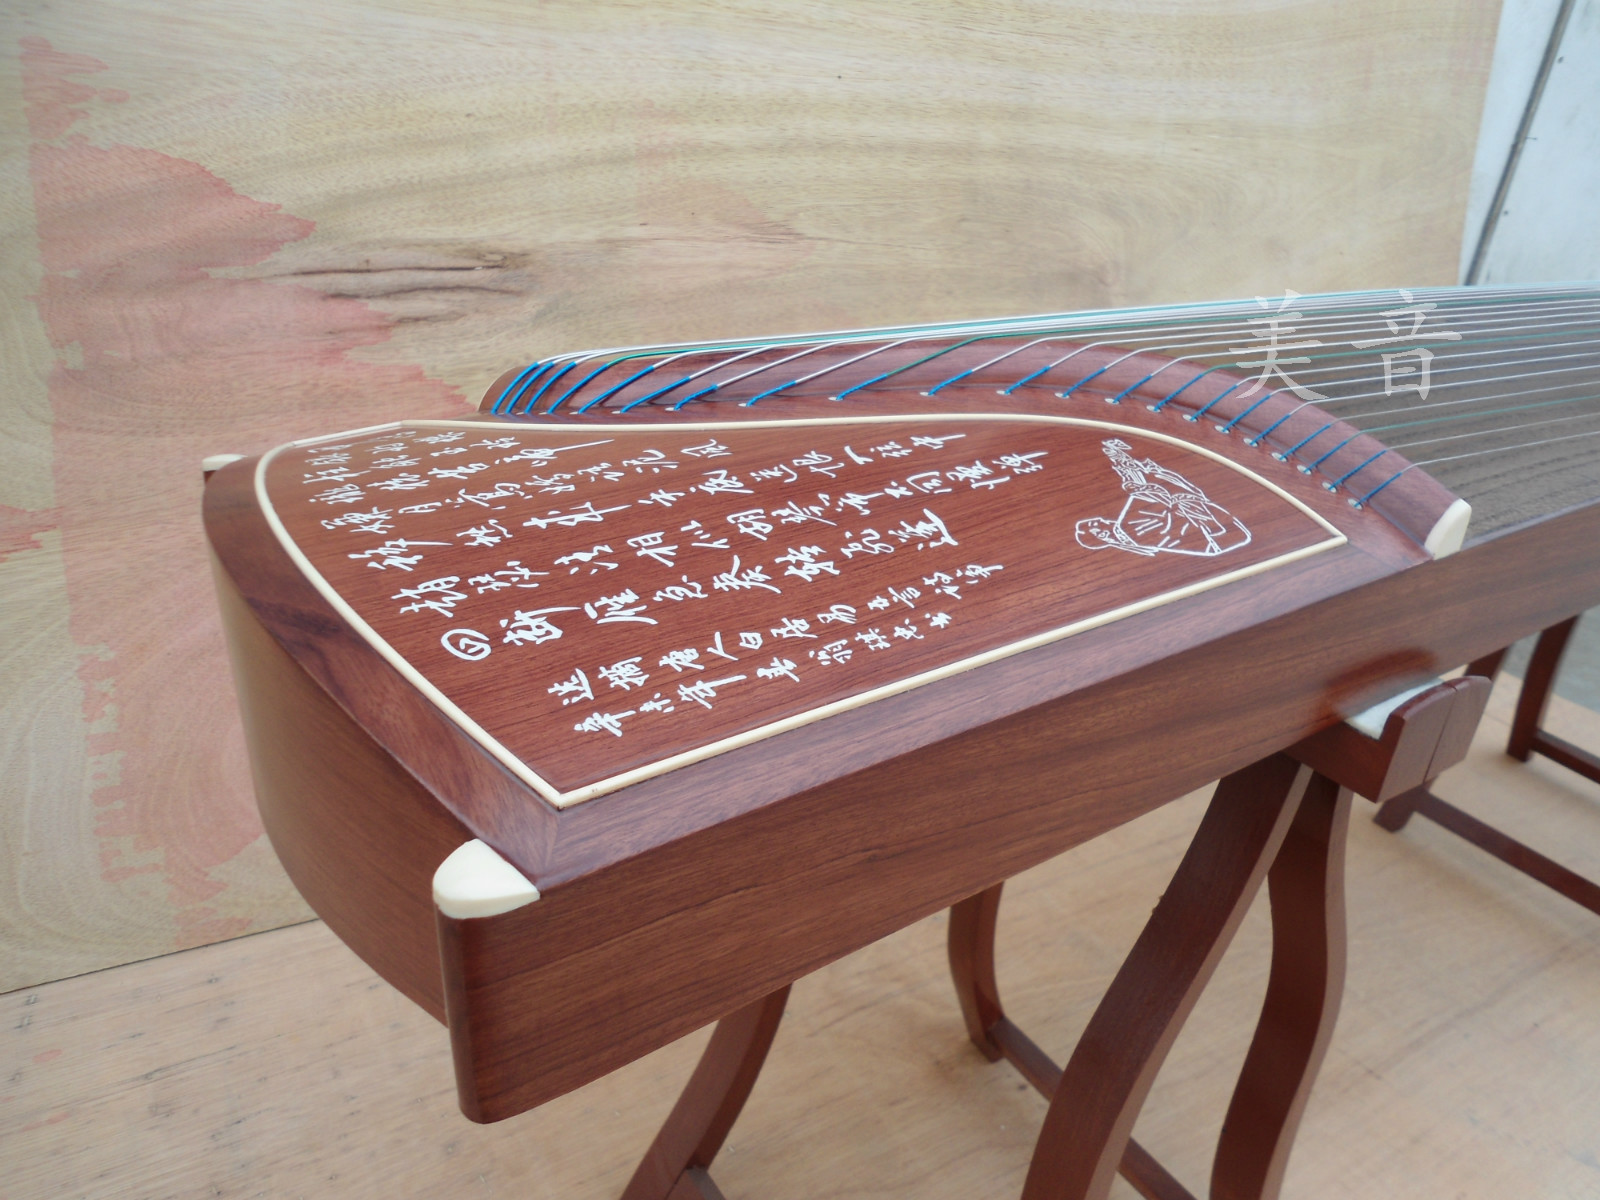 The professional standard of high-grade mahogany guzheng guzheng guzheng lettering grading package mail send a full set of accessories